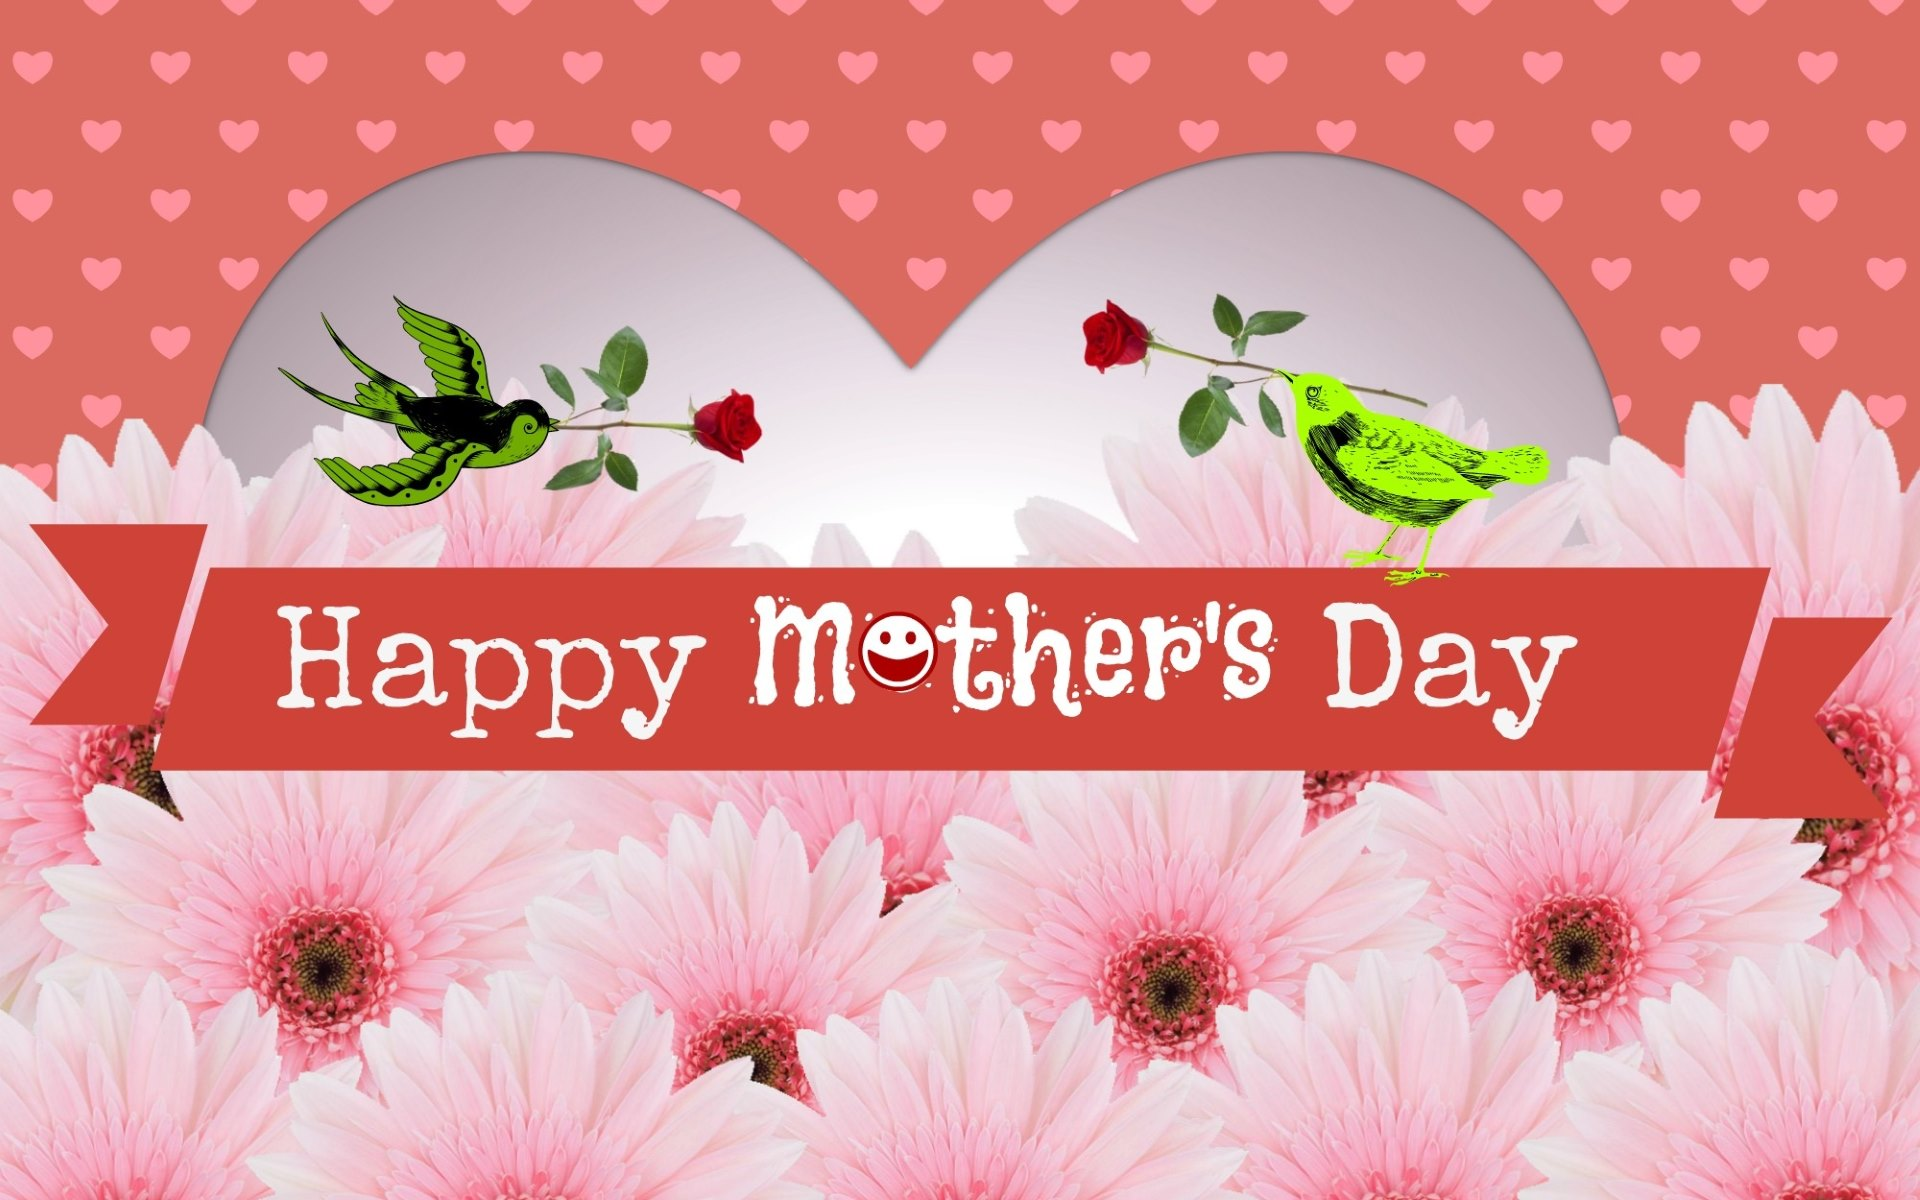 Wallpaper Of Happy Mothers Day: Happy Mother's Day Art Full HD Wallpaper And Background